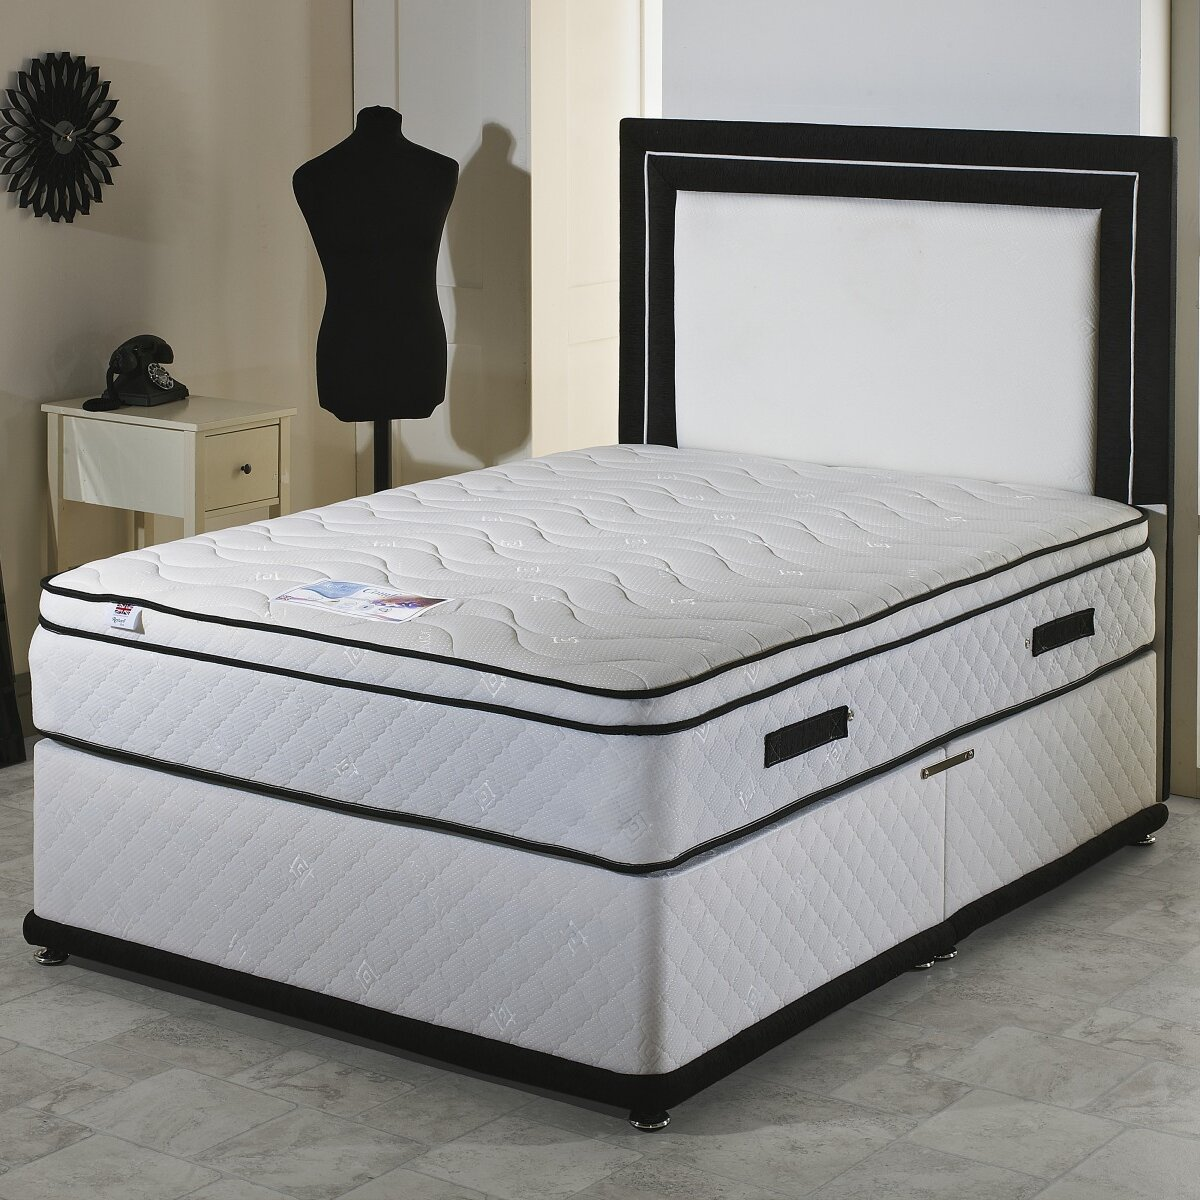 Home Haus Pocket Sprung 2000 Divan Bed